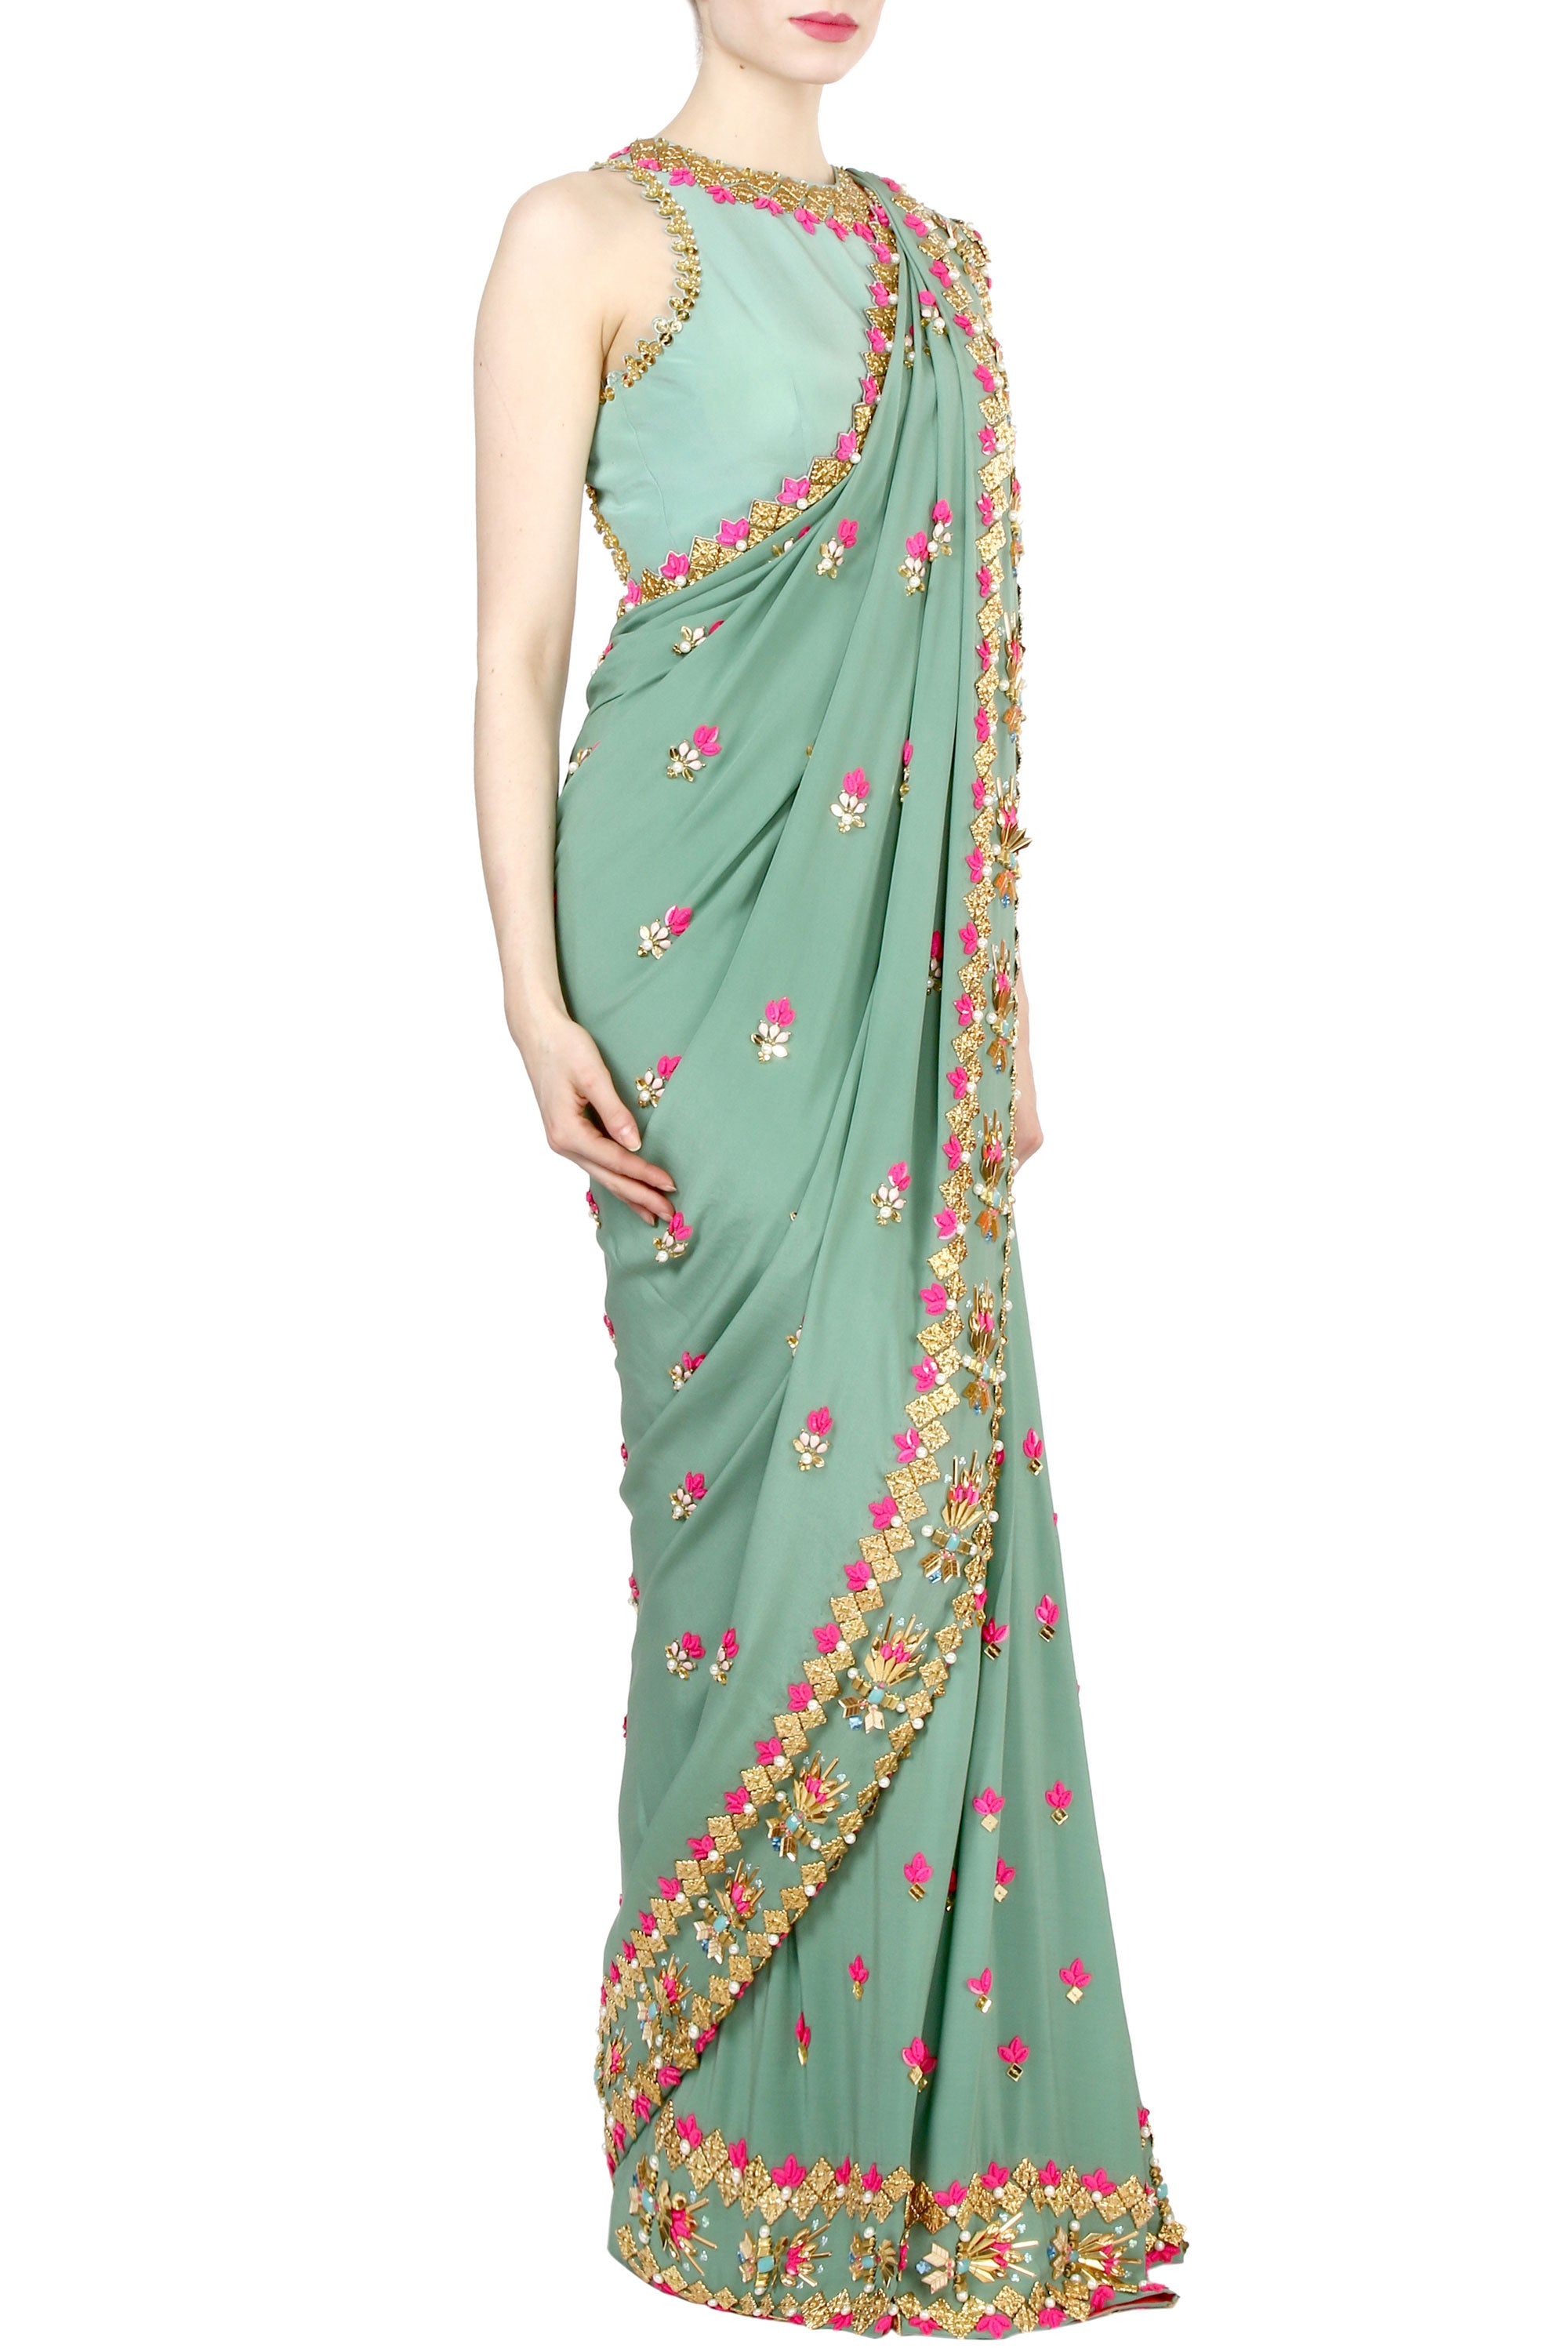 Jade Green Saree And Blouse Set Side